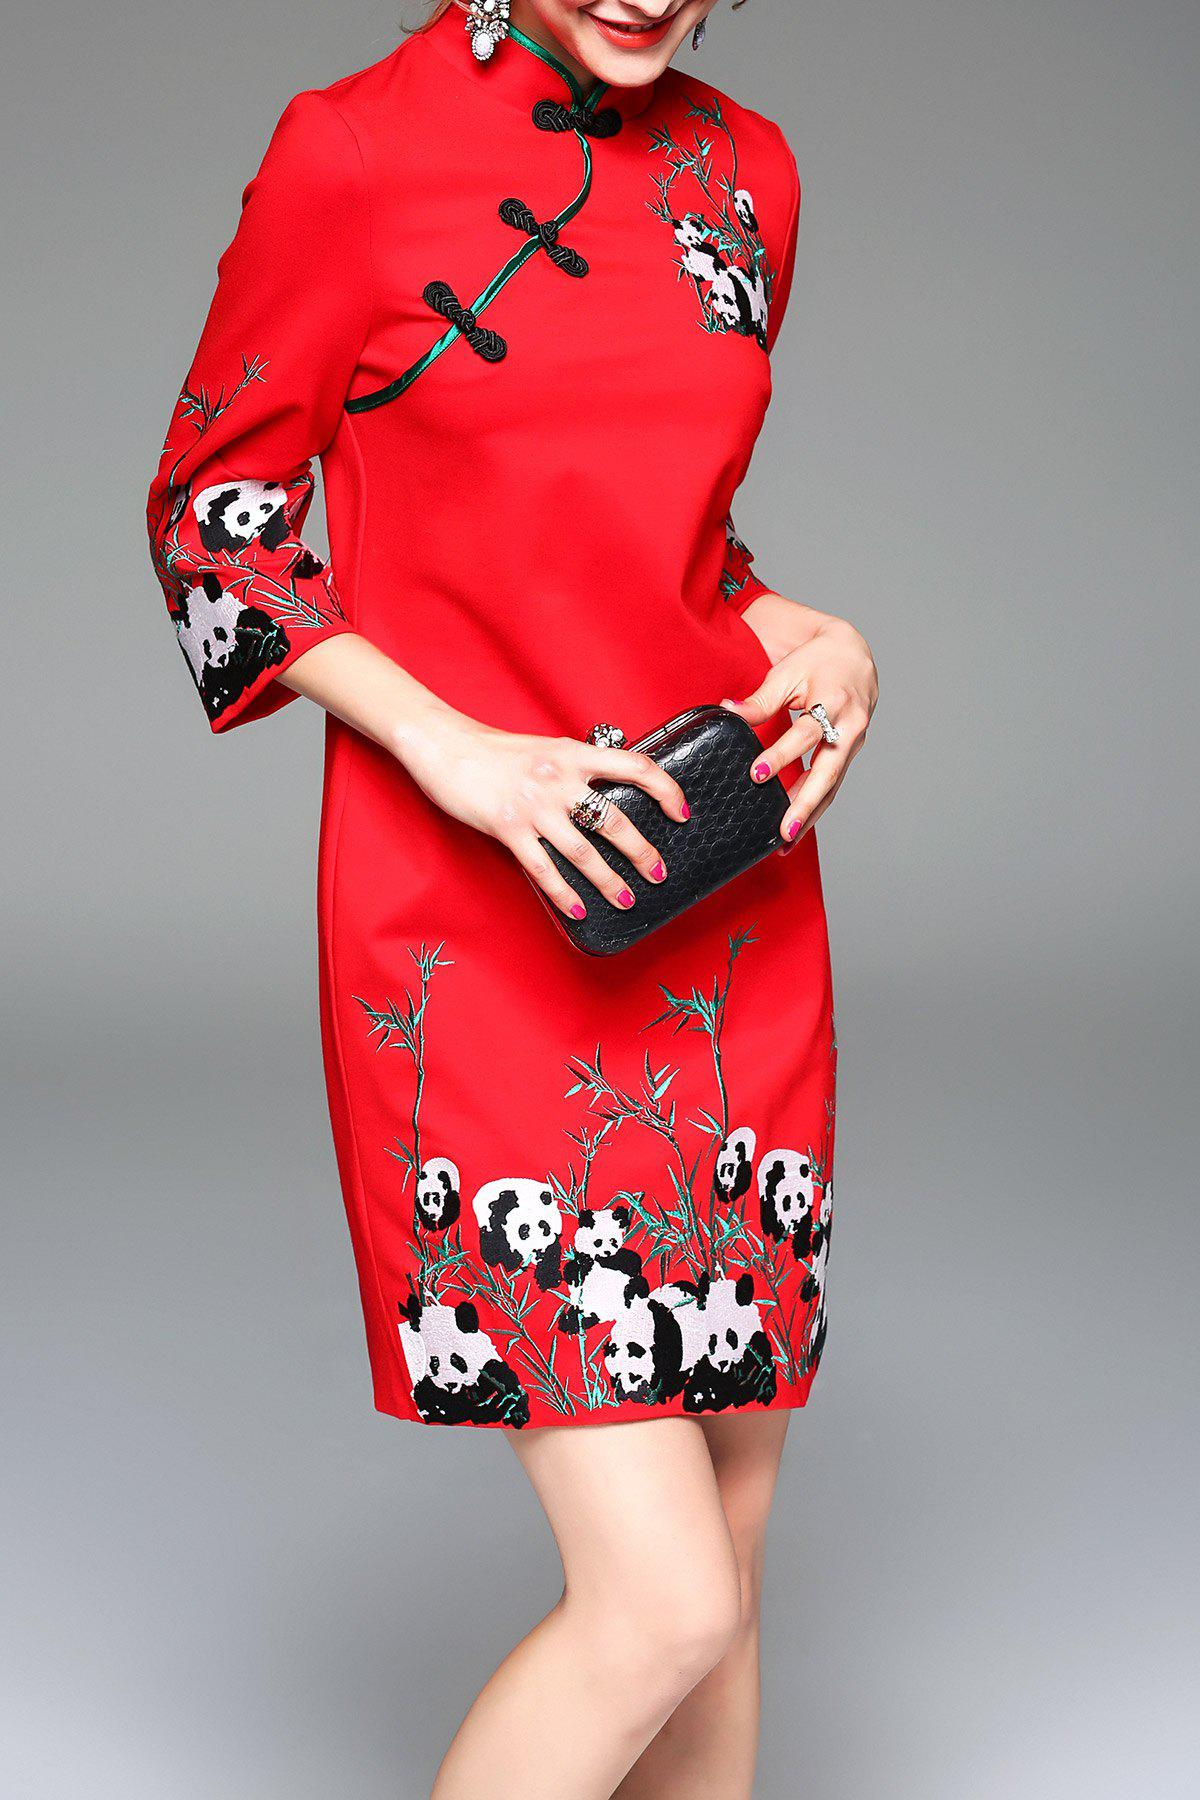 Panda Embroidered Mini Cheongsam Dress